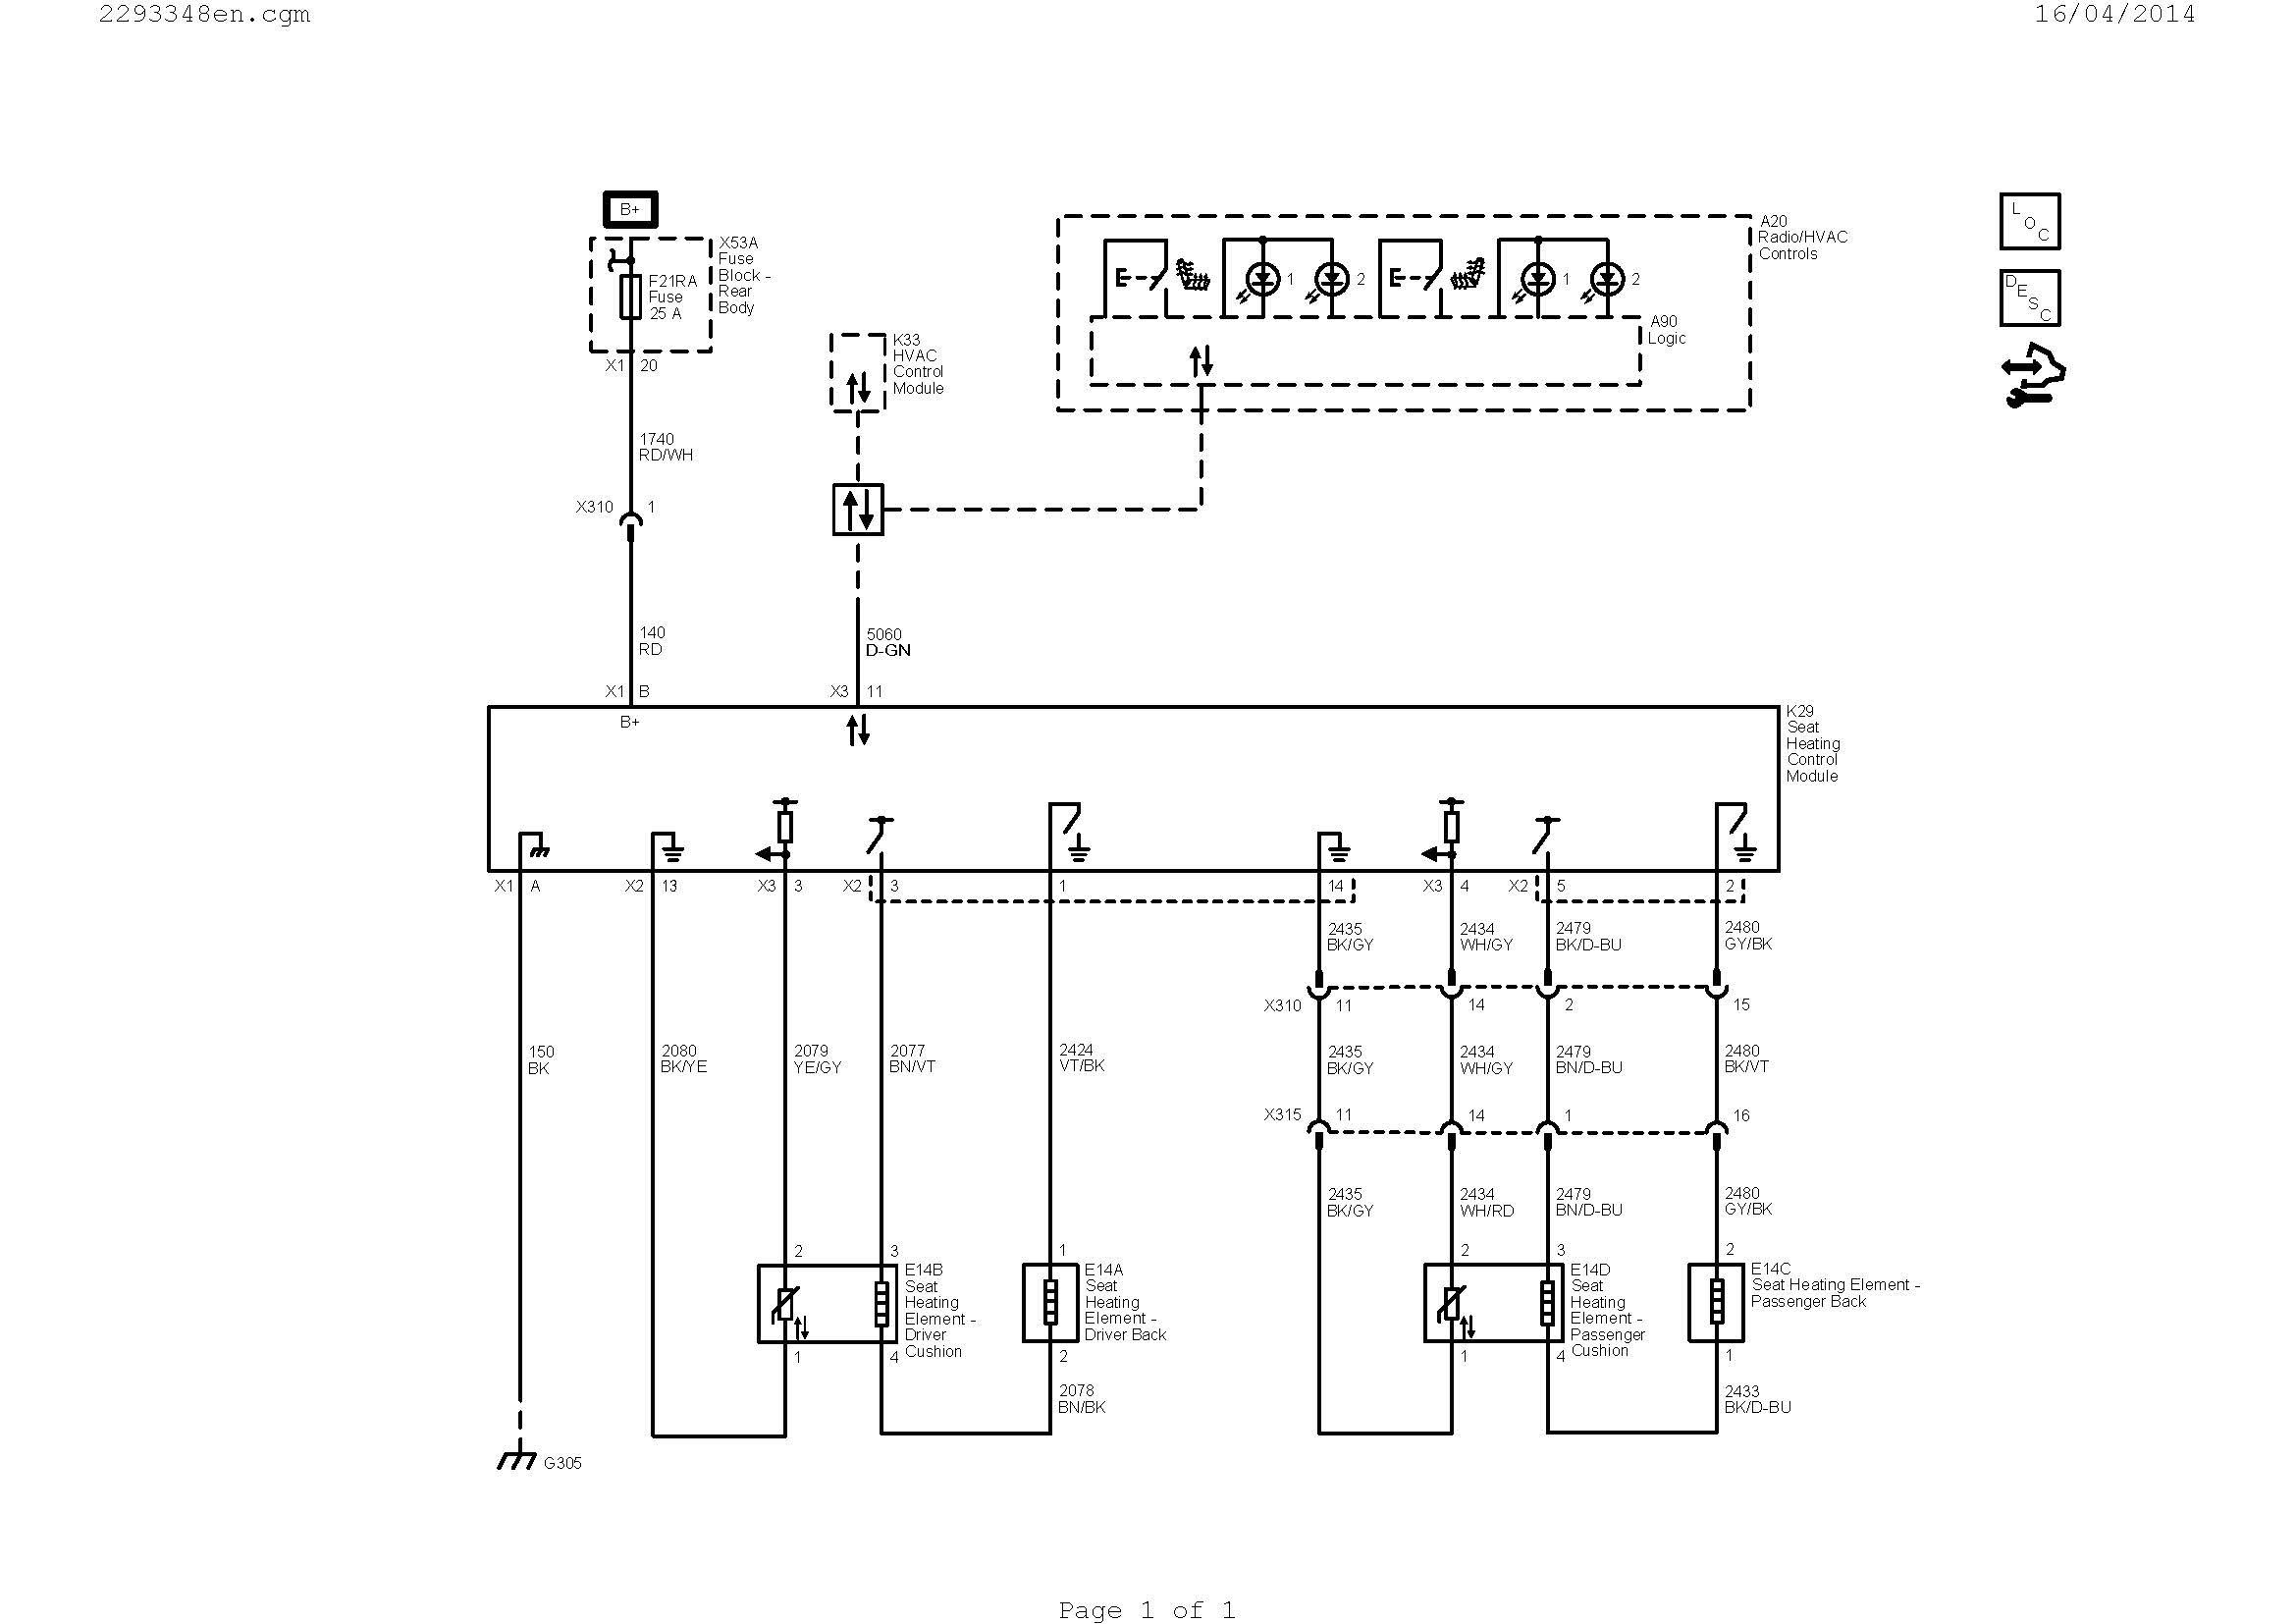 rib2401b wiring diagram Download-ac thermostat wiring diagram Download Wiring A Ac Thermostat Diagram New Wiring Diagram Ac Valid 2-p